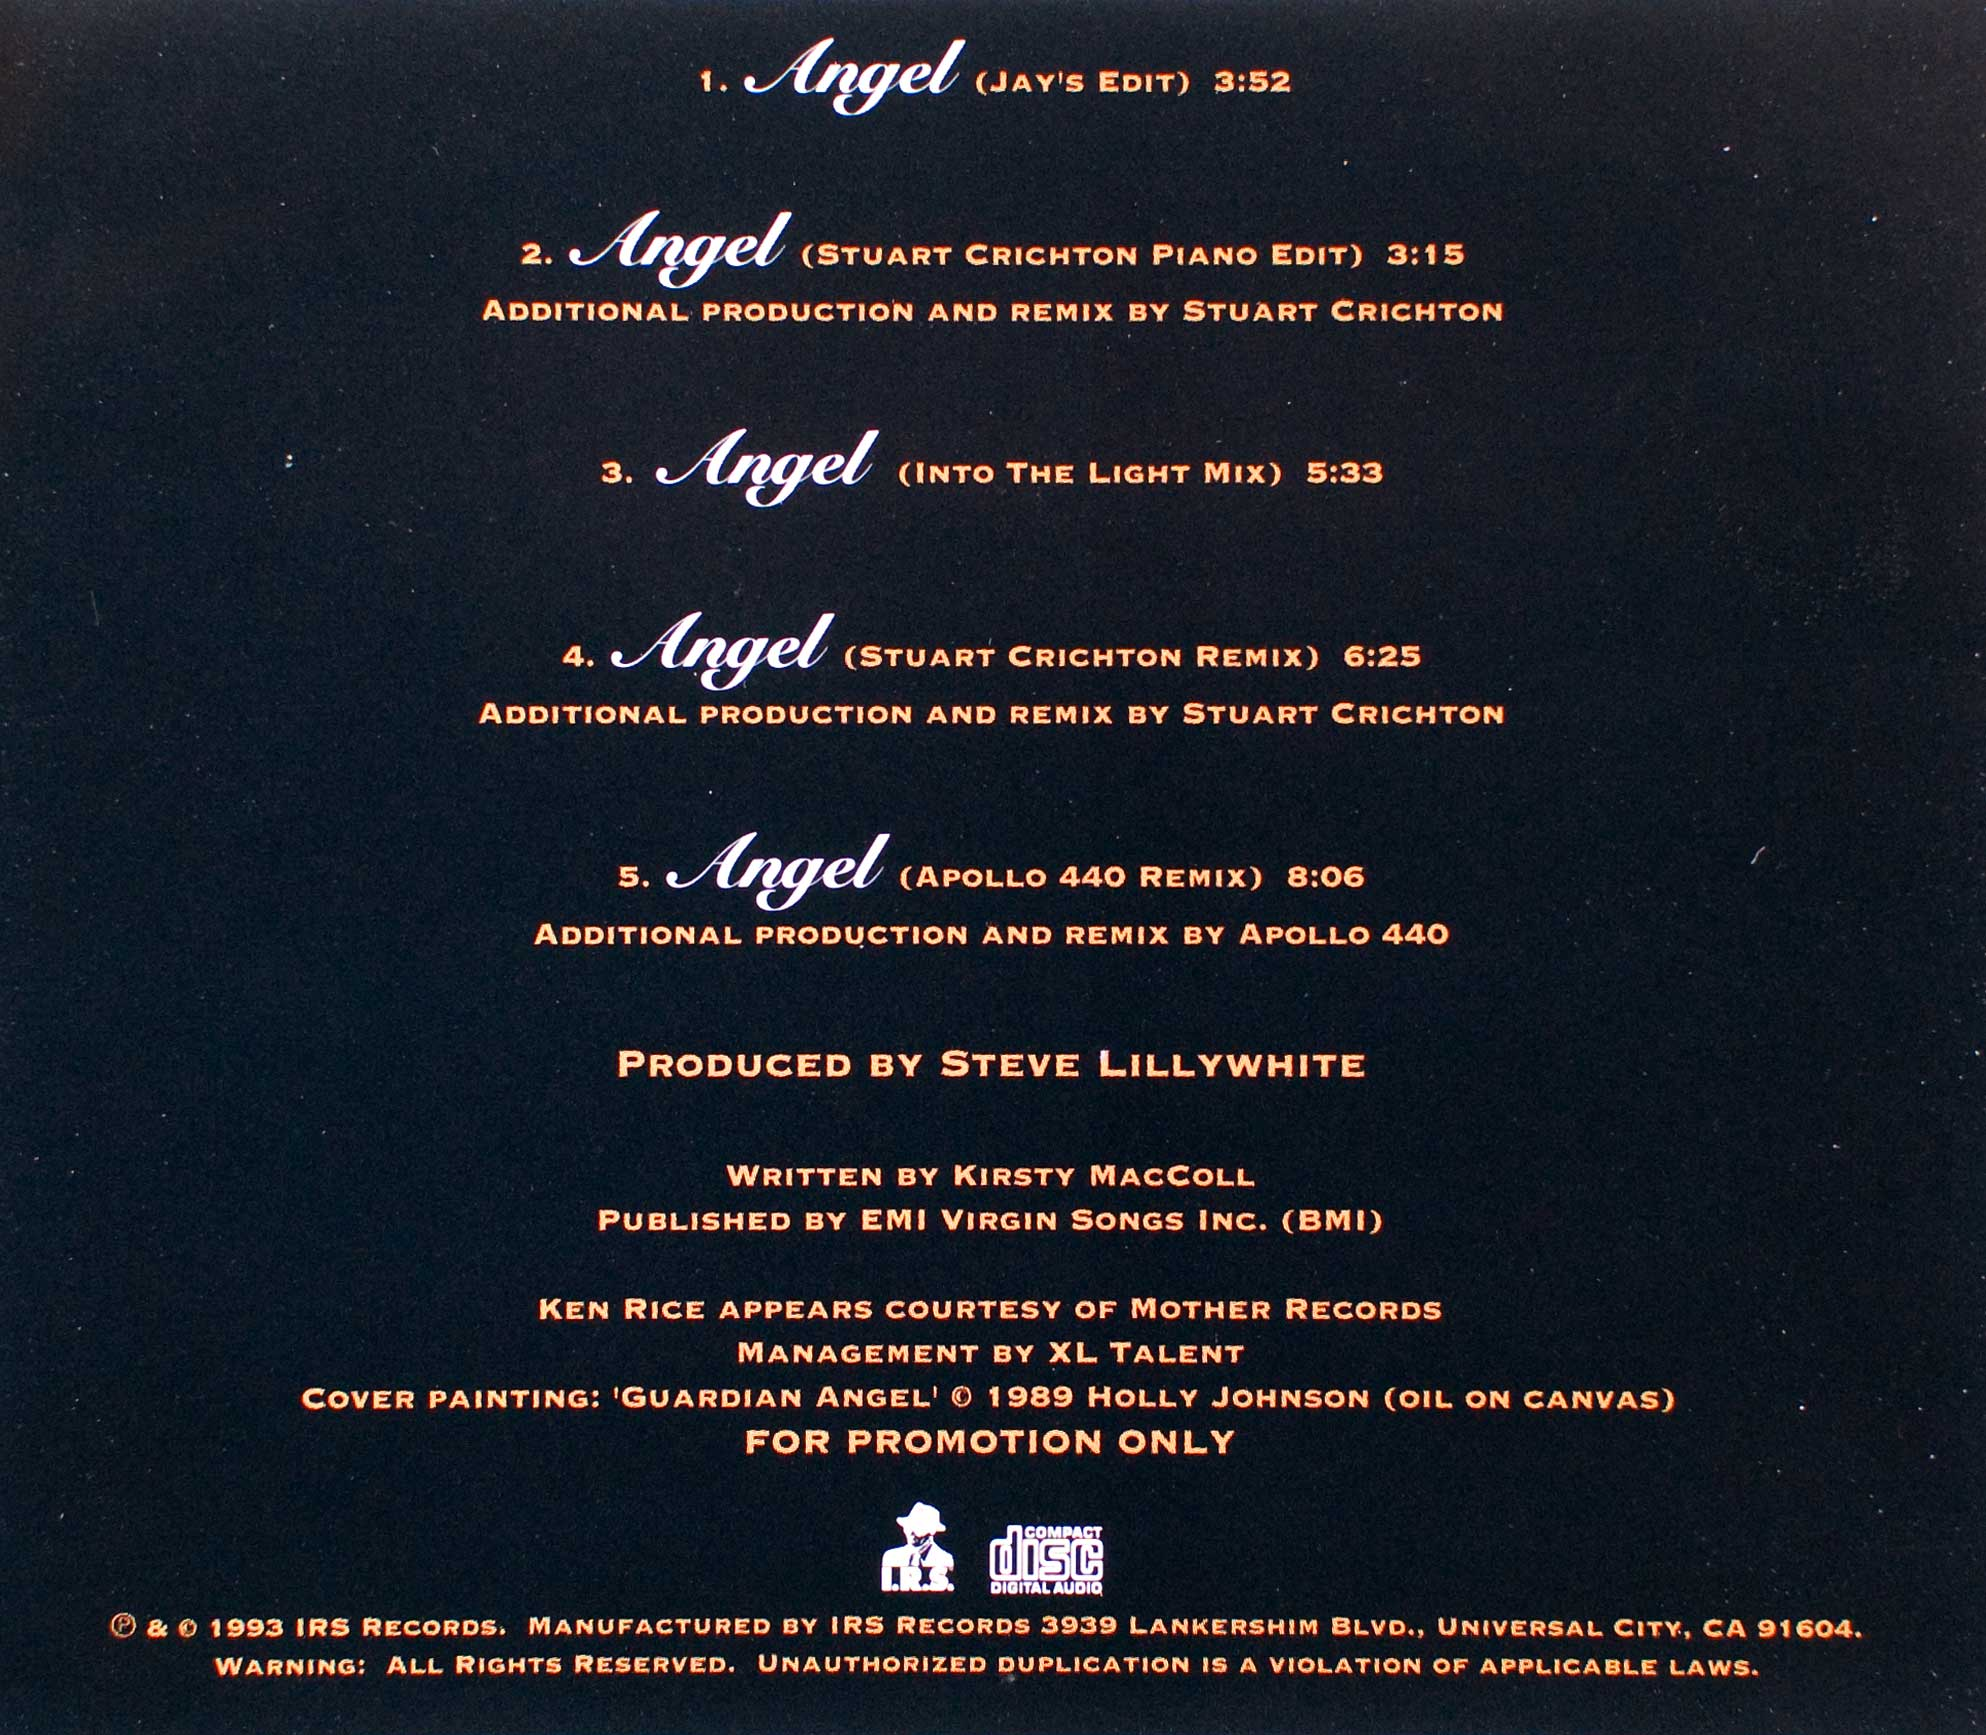 Angel (CD promo) back cover